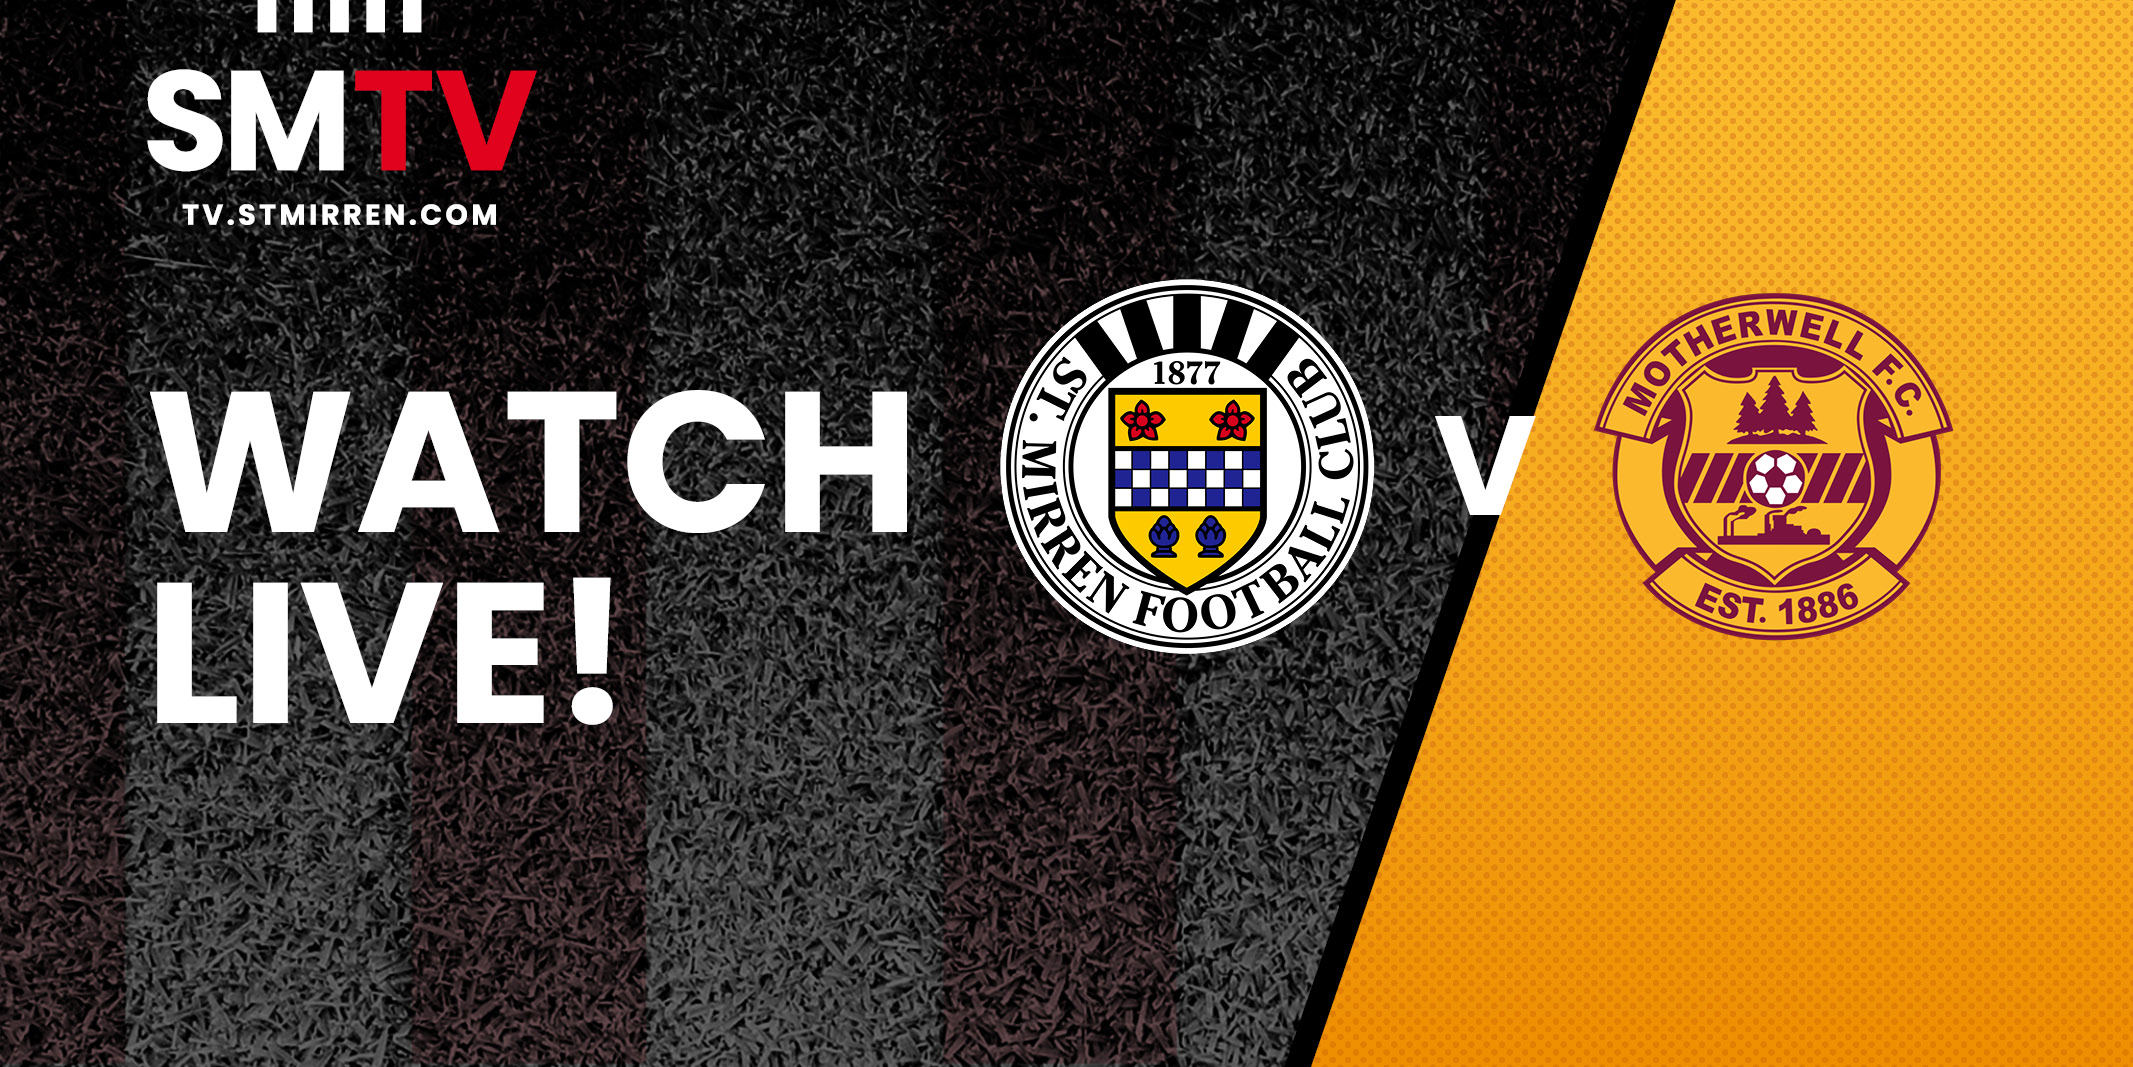 Up next: St Mirren v Motherwell (17th Oct)